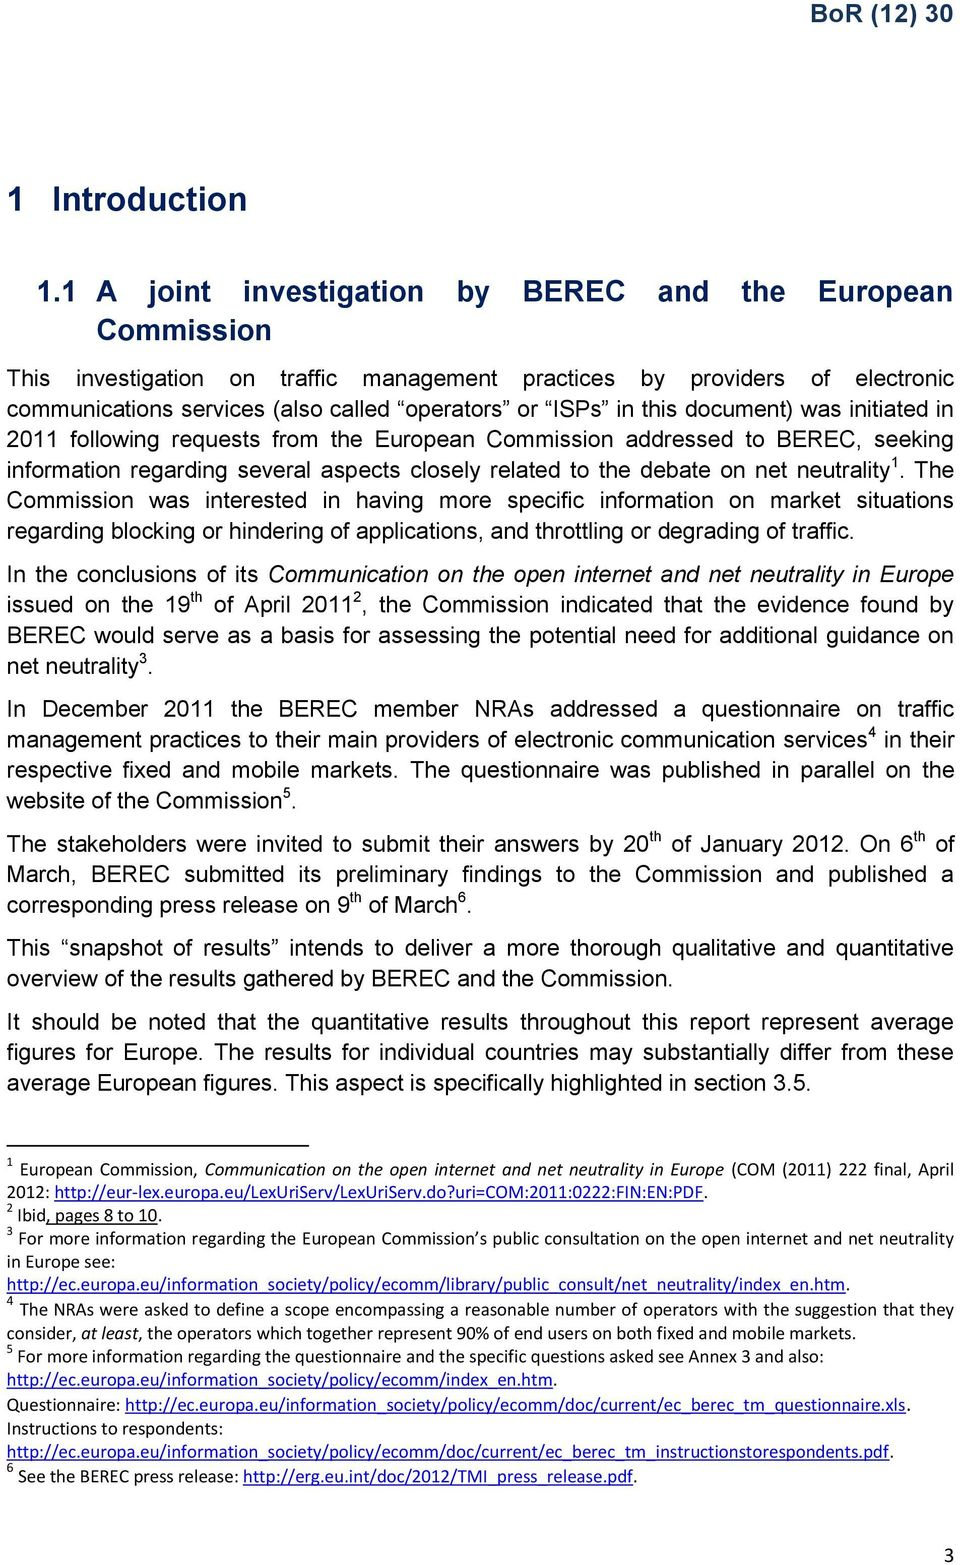 this document) was initiated in 2011 following requests from the European Commission addressed to BEREC, seeking information regarding several aspects closely related to the debate on net neutrality